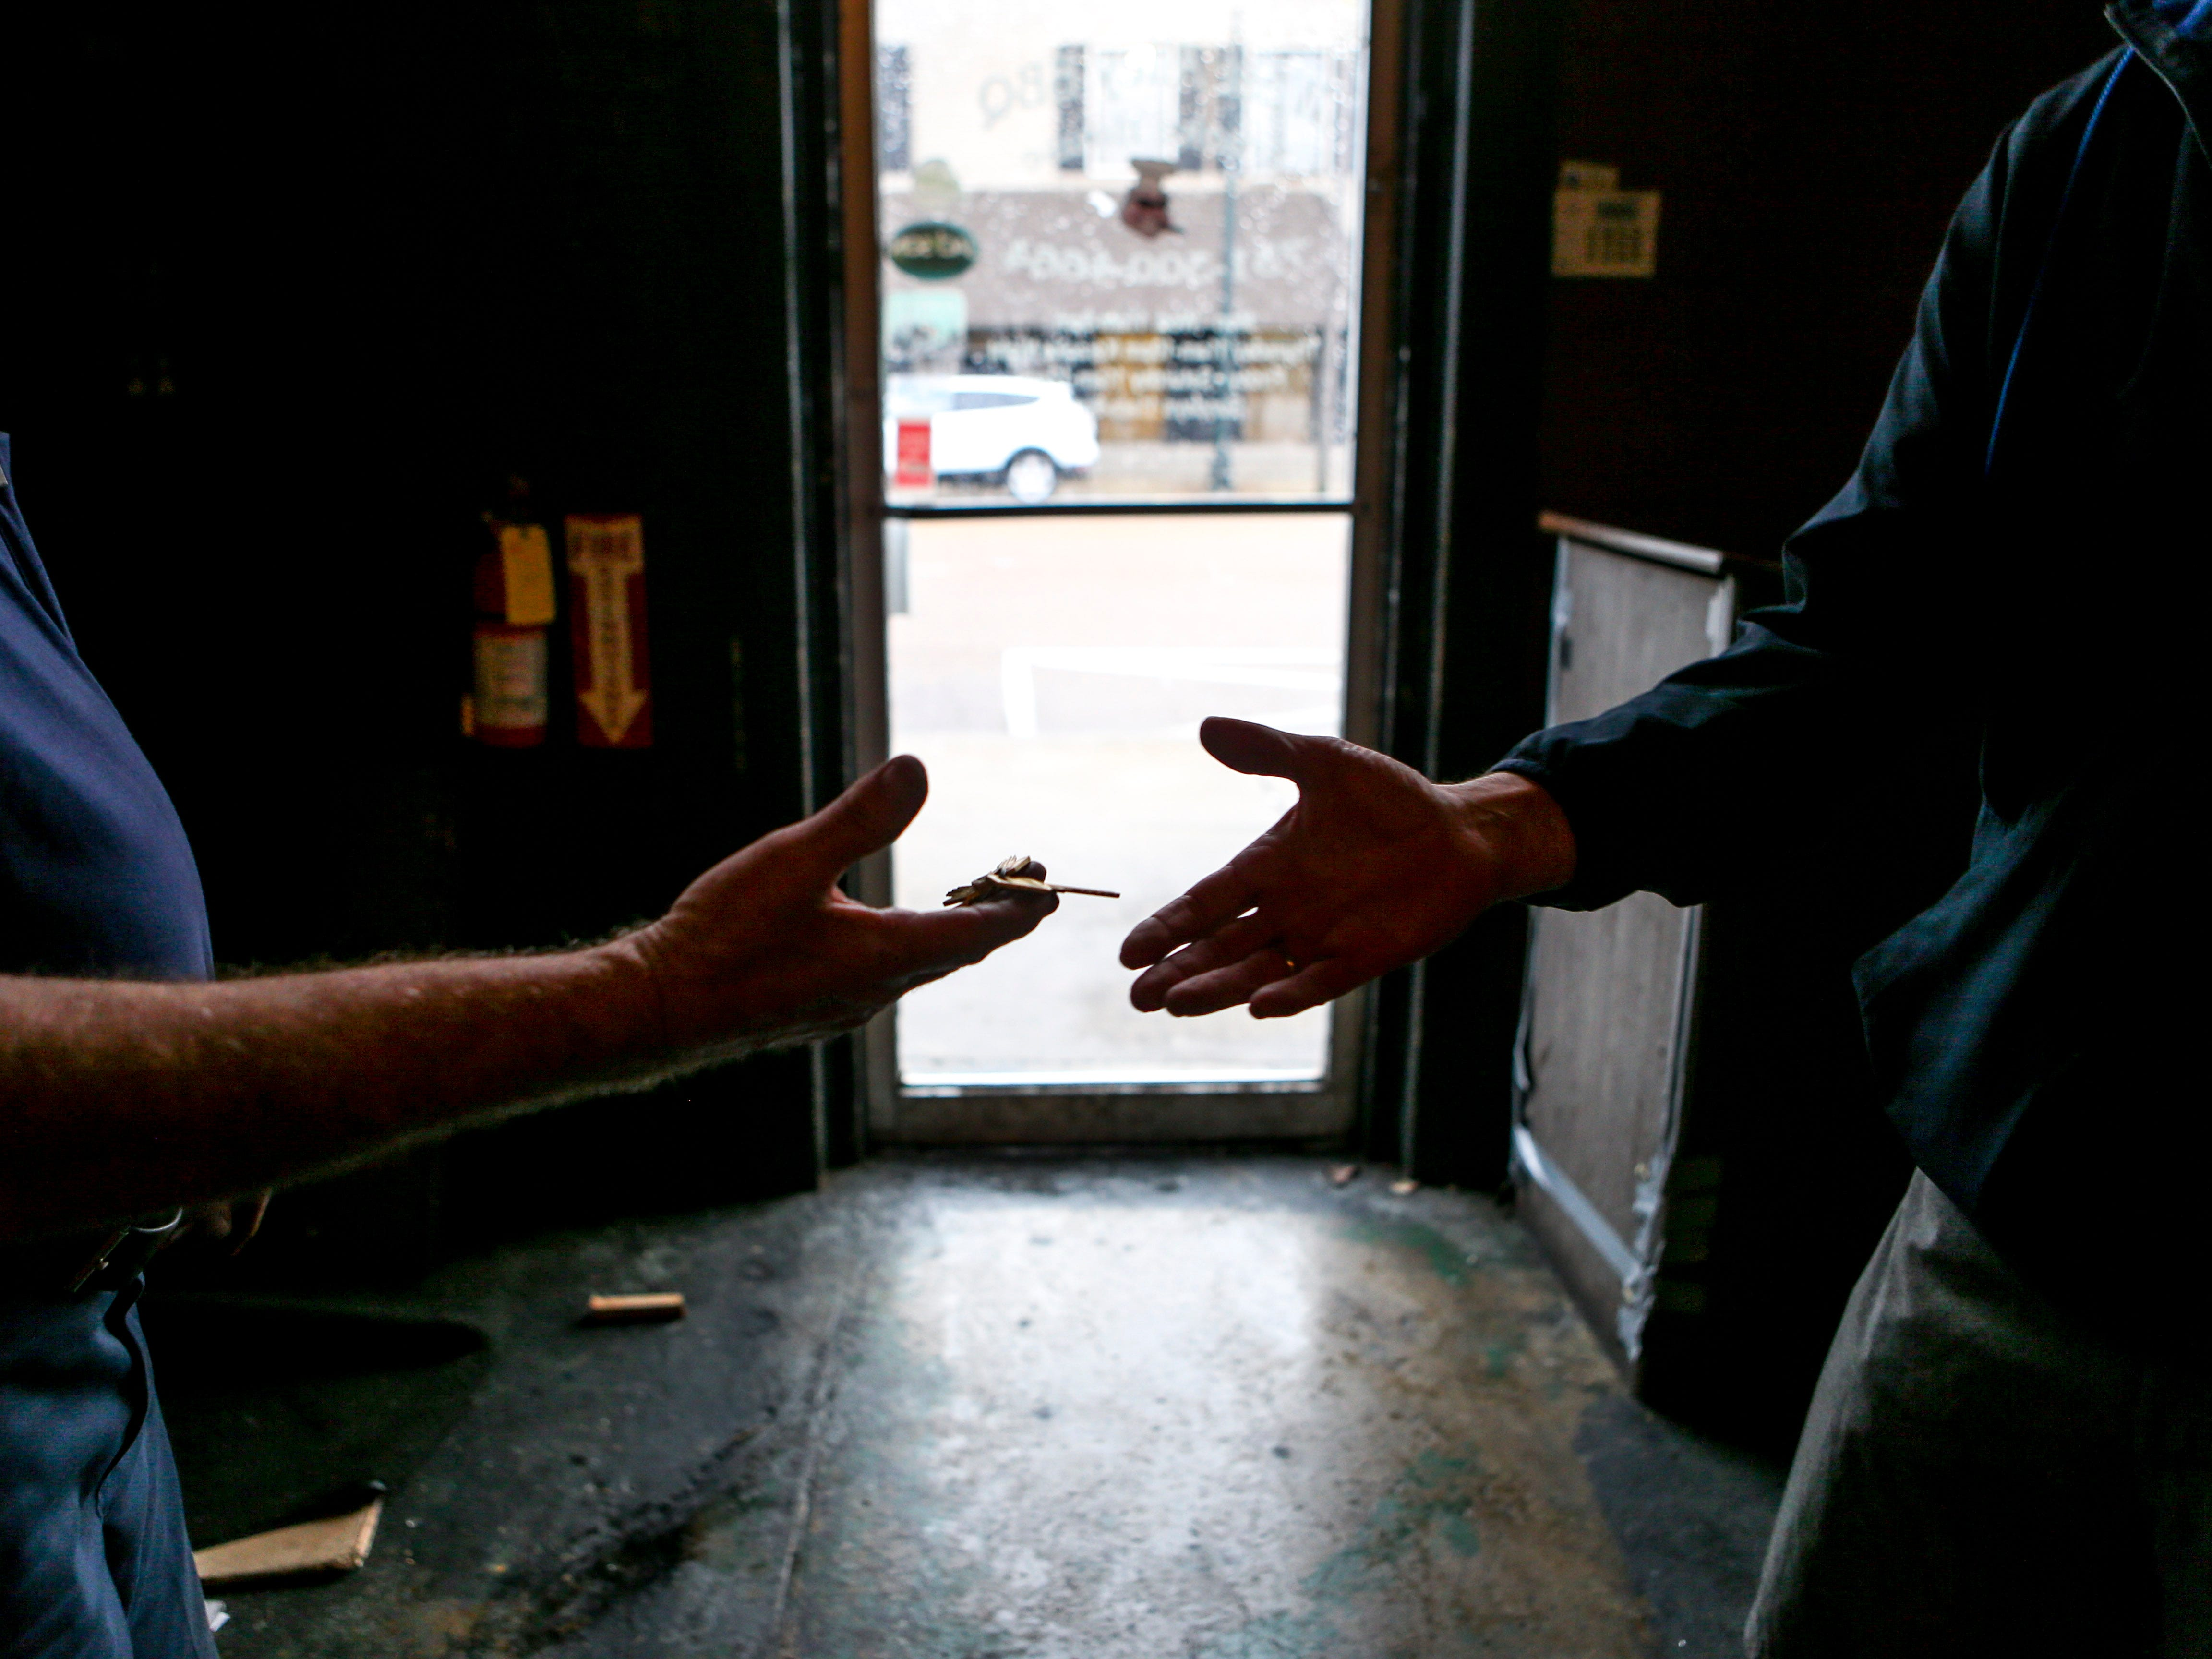 Steve Mooney, left, hands over newly crafted keys to Drew Baker, right, the new owner of the previous location of West Alley BBQ in Jackson, Tenn., on Friday, Nov. 30, 2018.